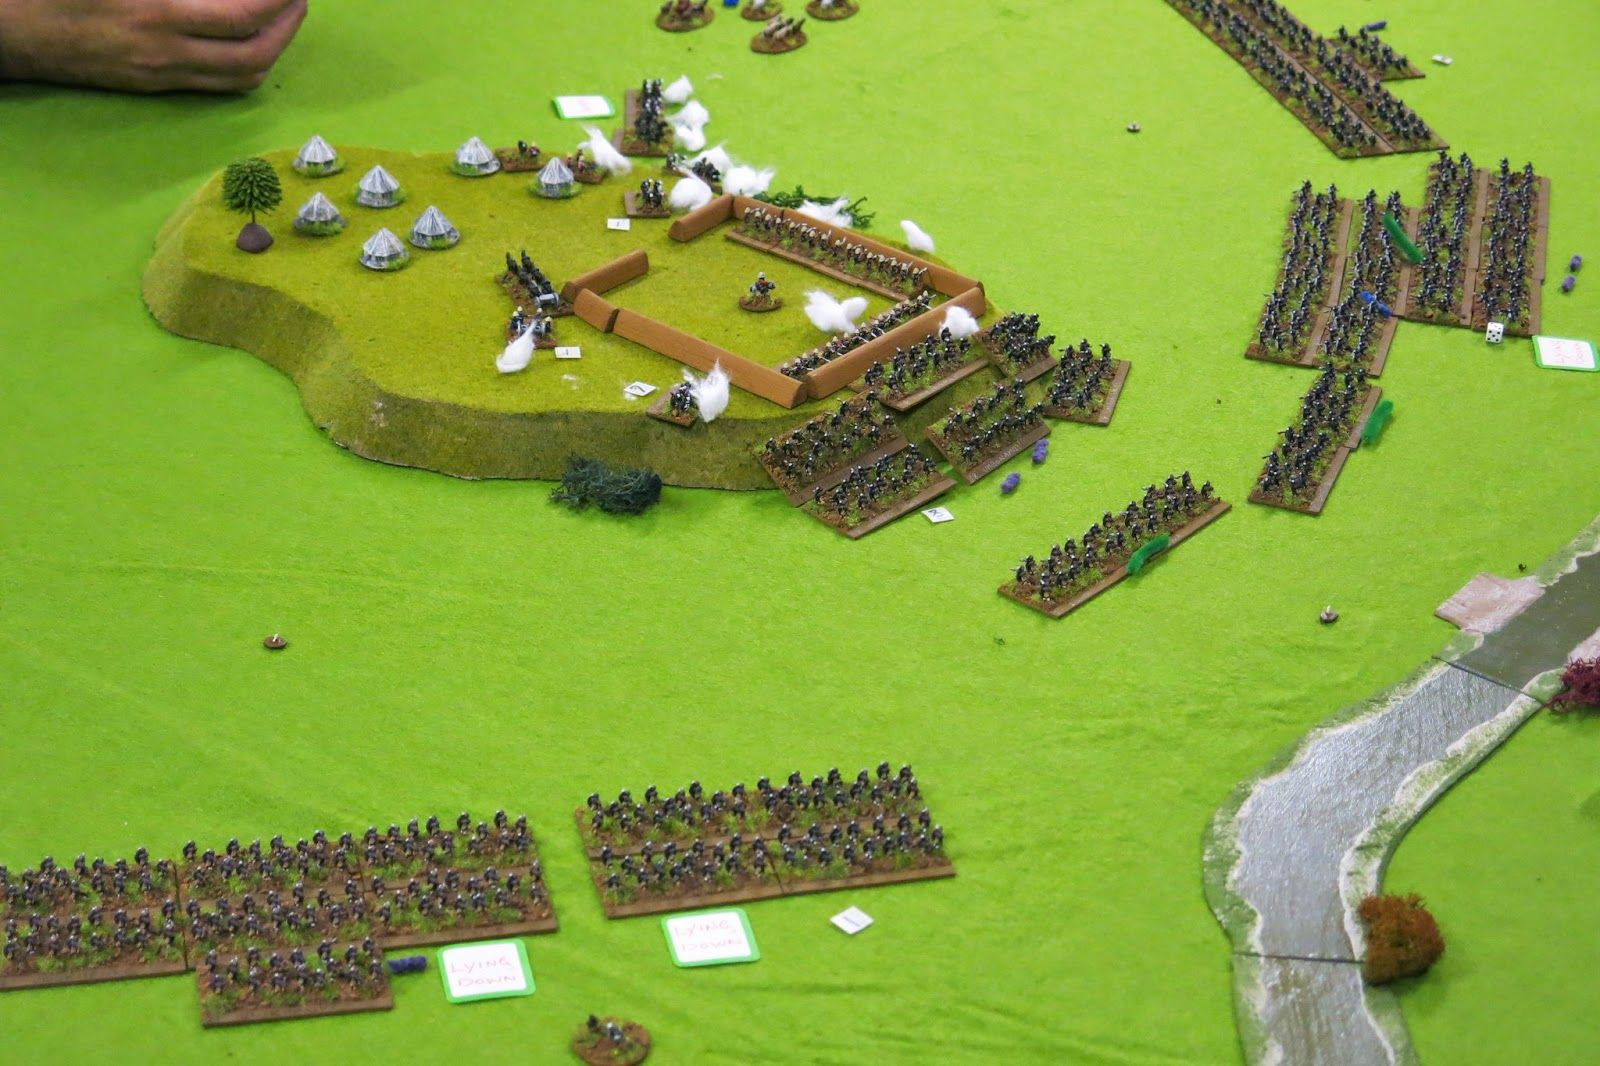 The Battle of Fort Tinta